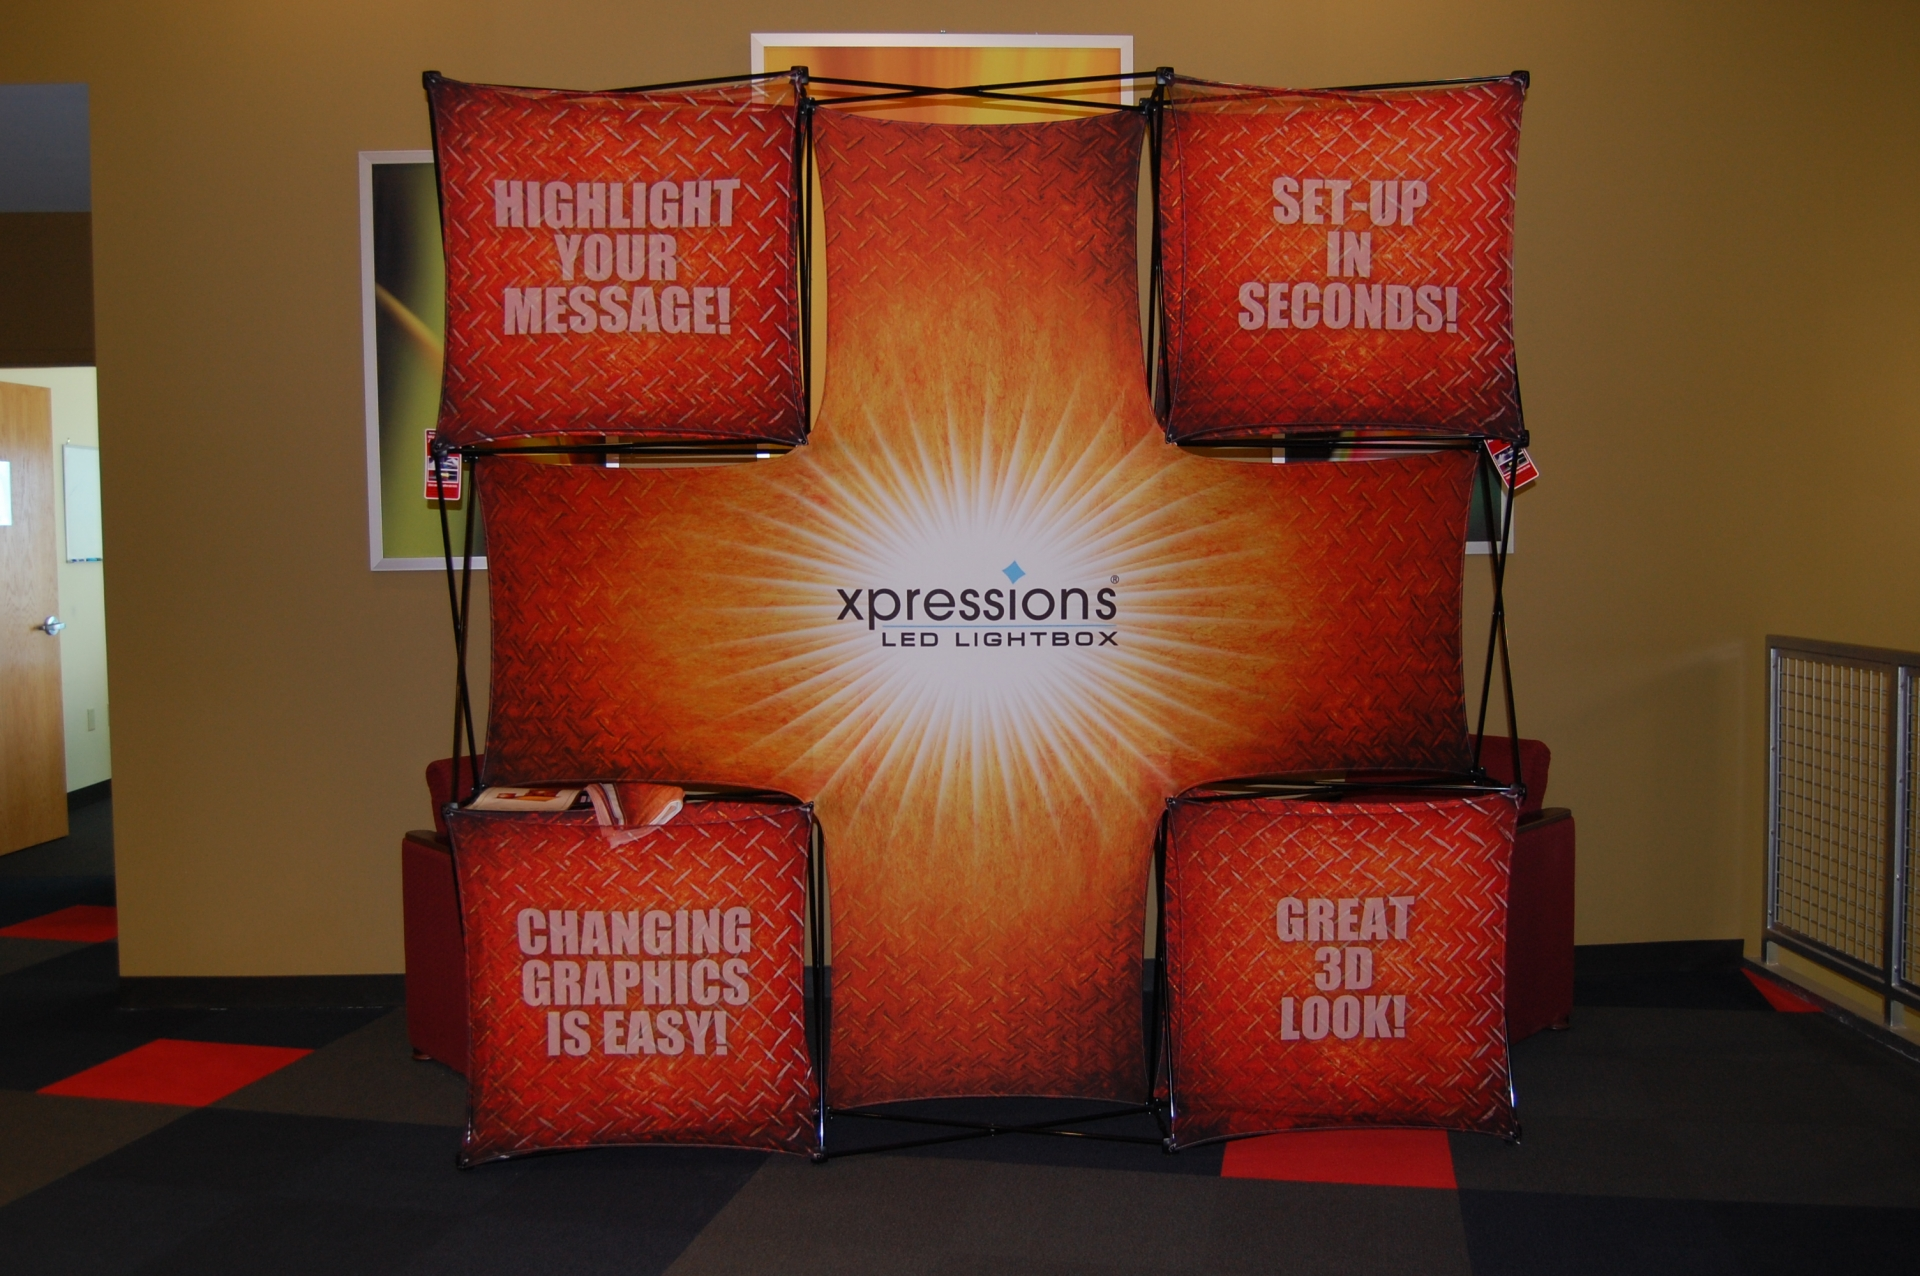 Xpressions LED Lightbox